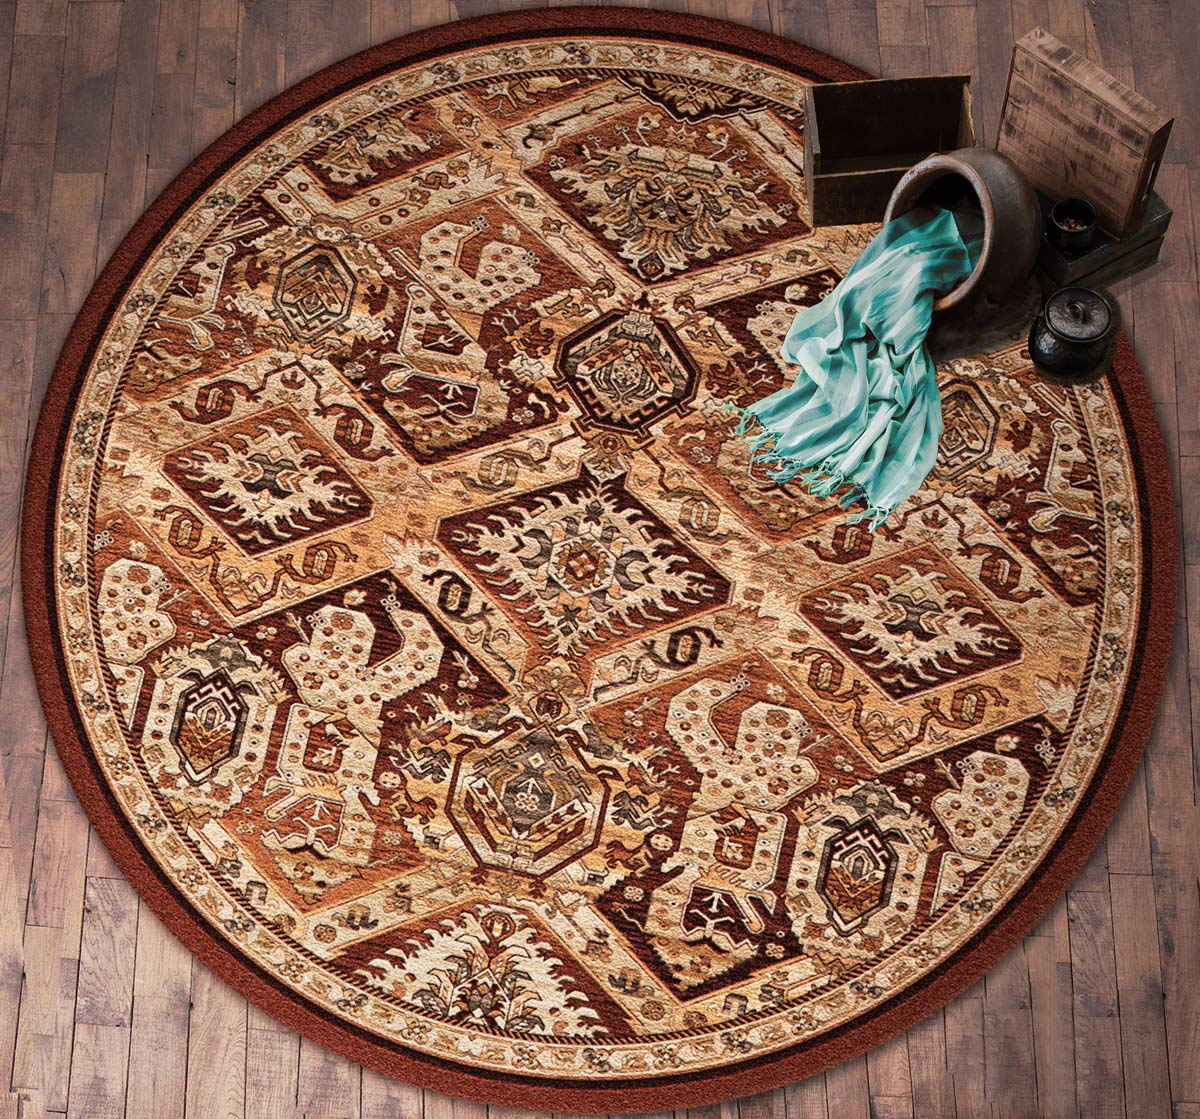 Spirit Dancer Rug - 8 Ft. Round